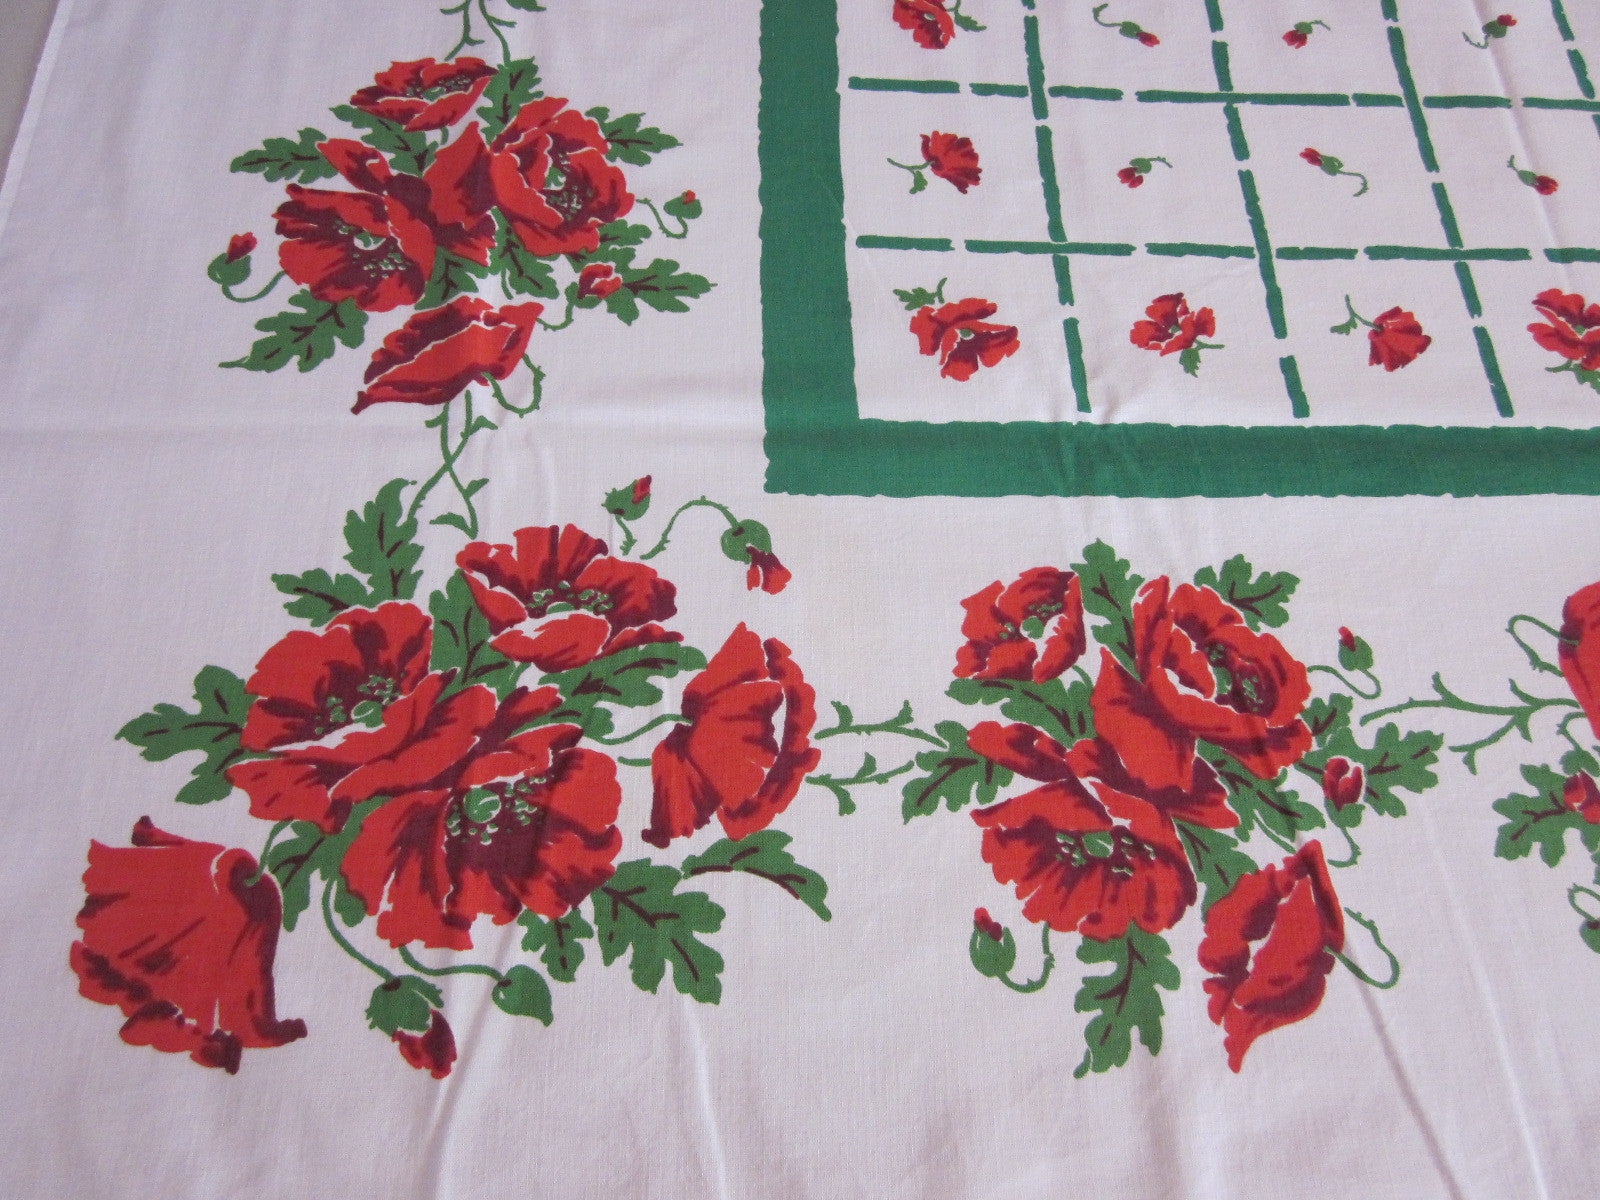 Red Startex Poppies on Green Floral Vintage Printed Tablecloth (50 X 48)